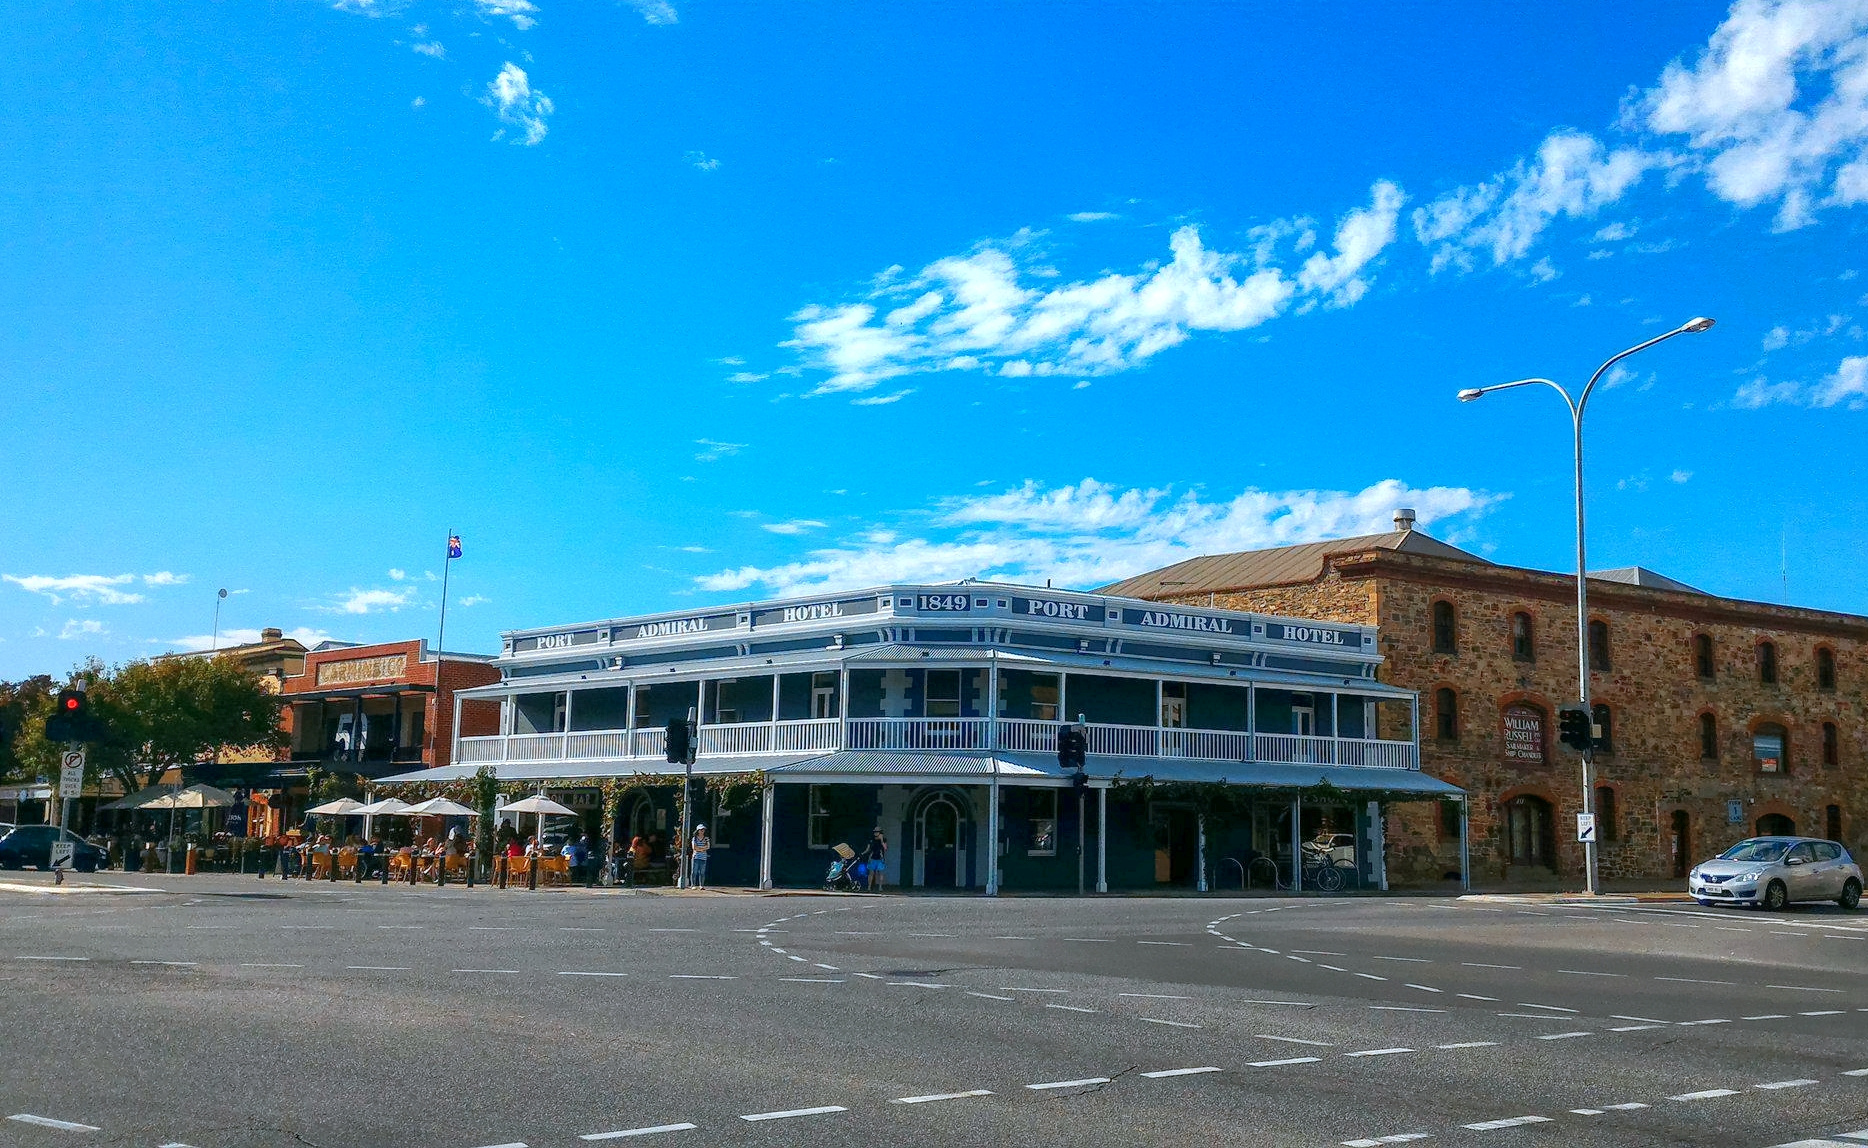 Port Adelaide Enfield South Australia